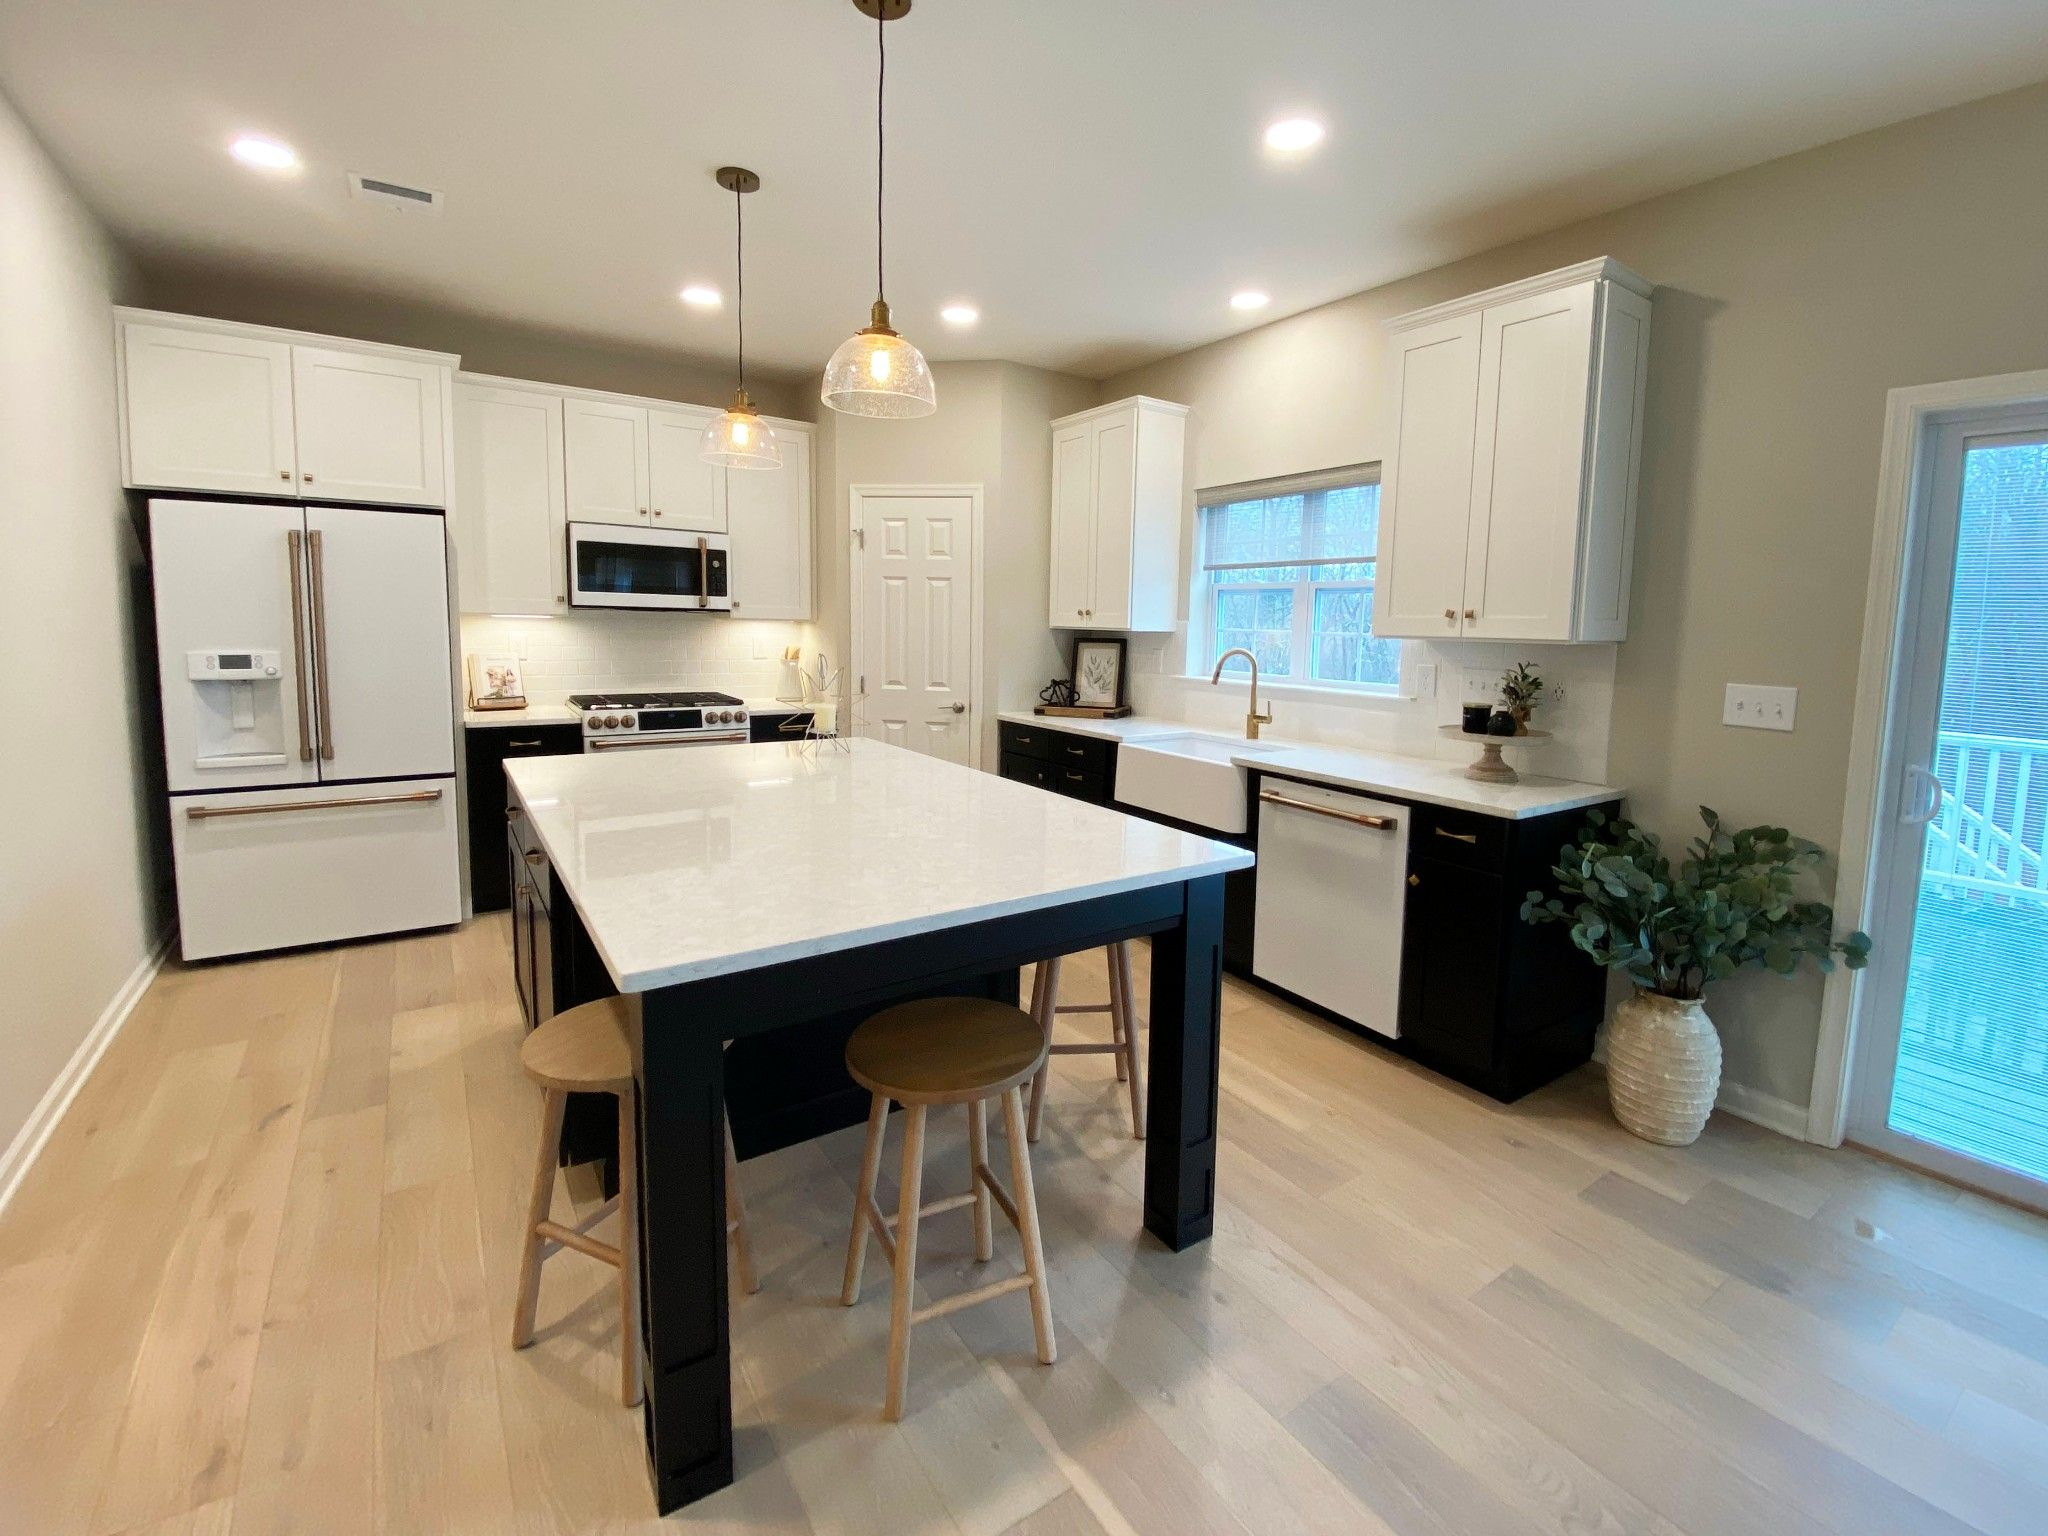 Kitchen featured in the Morgan Country By Tuskes Homes in Scranton-Wilkes-Barre, PA